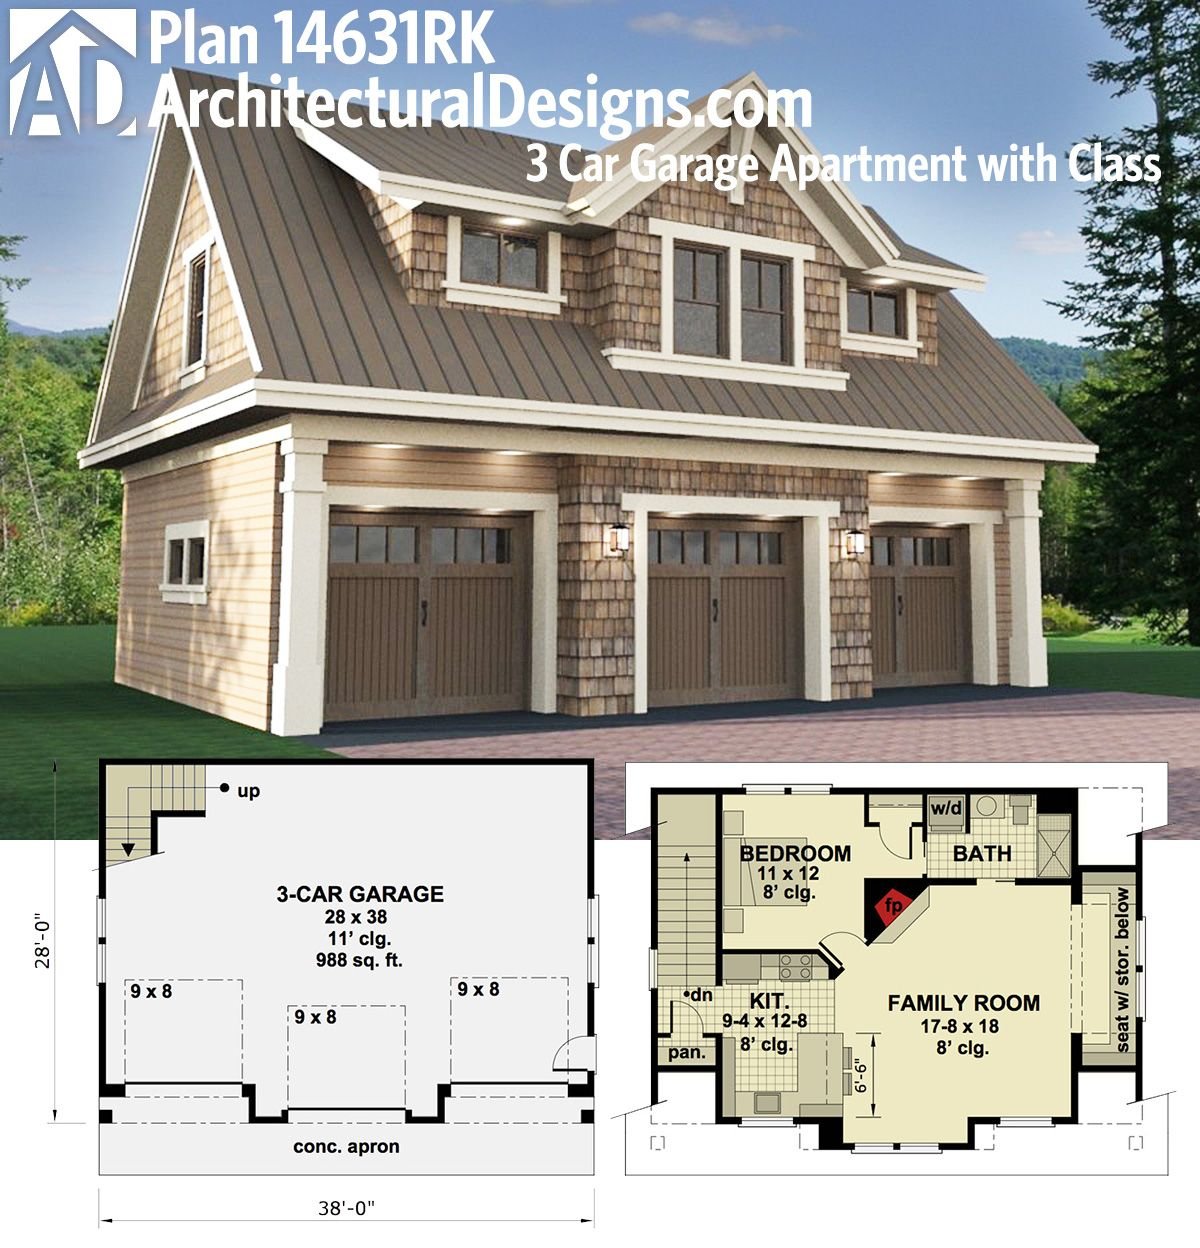 Plan 14631rk 3 car garage apartment with class carriage for Carriage home designs